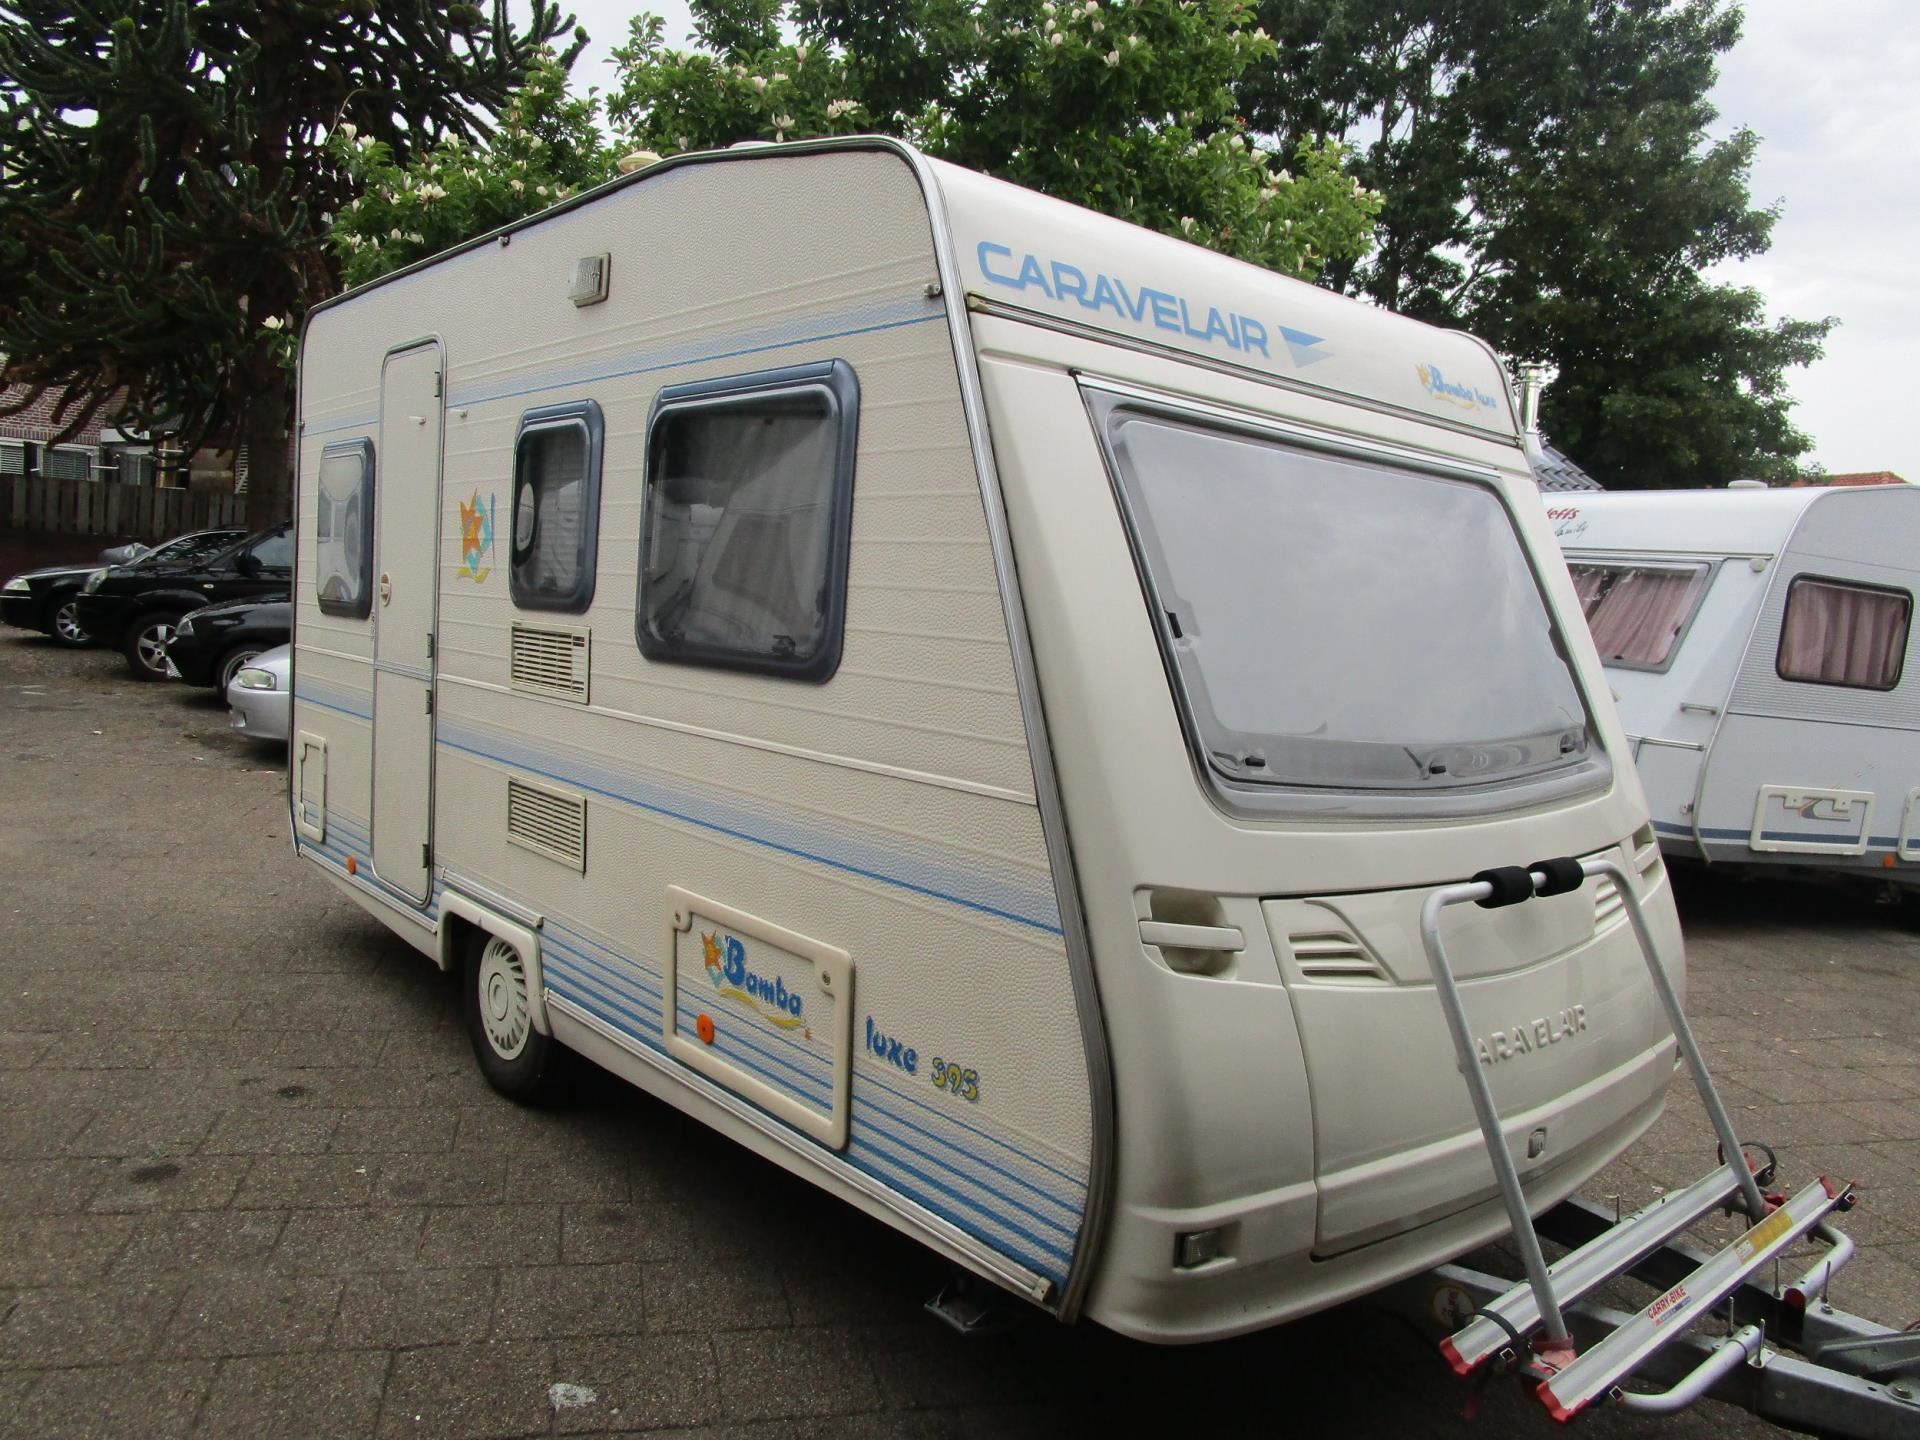 Caravelair 395 Bamba DeLuxe Tv Antenne, Voortent, Luifel, Toilet occasion - Auto Tewes